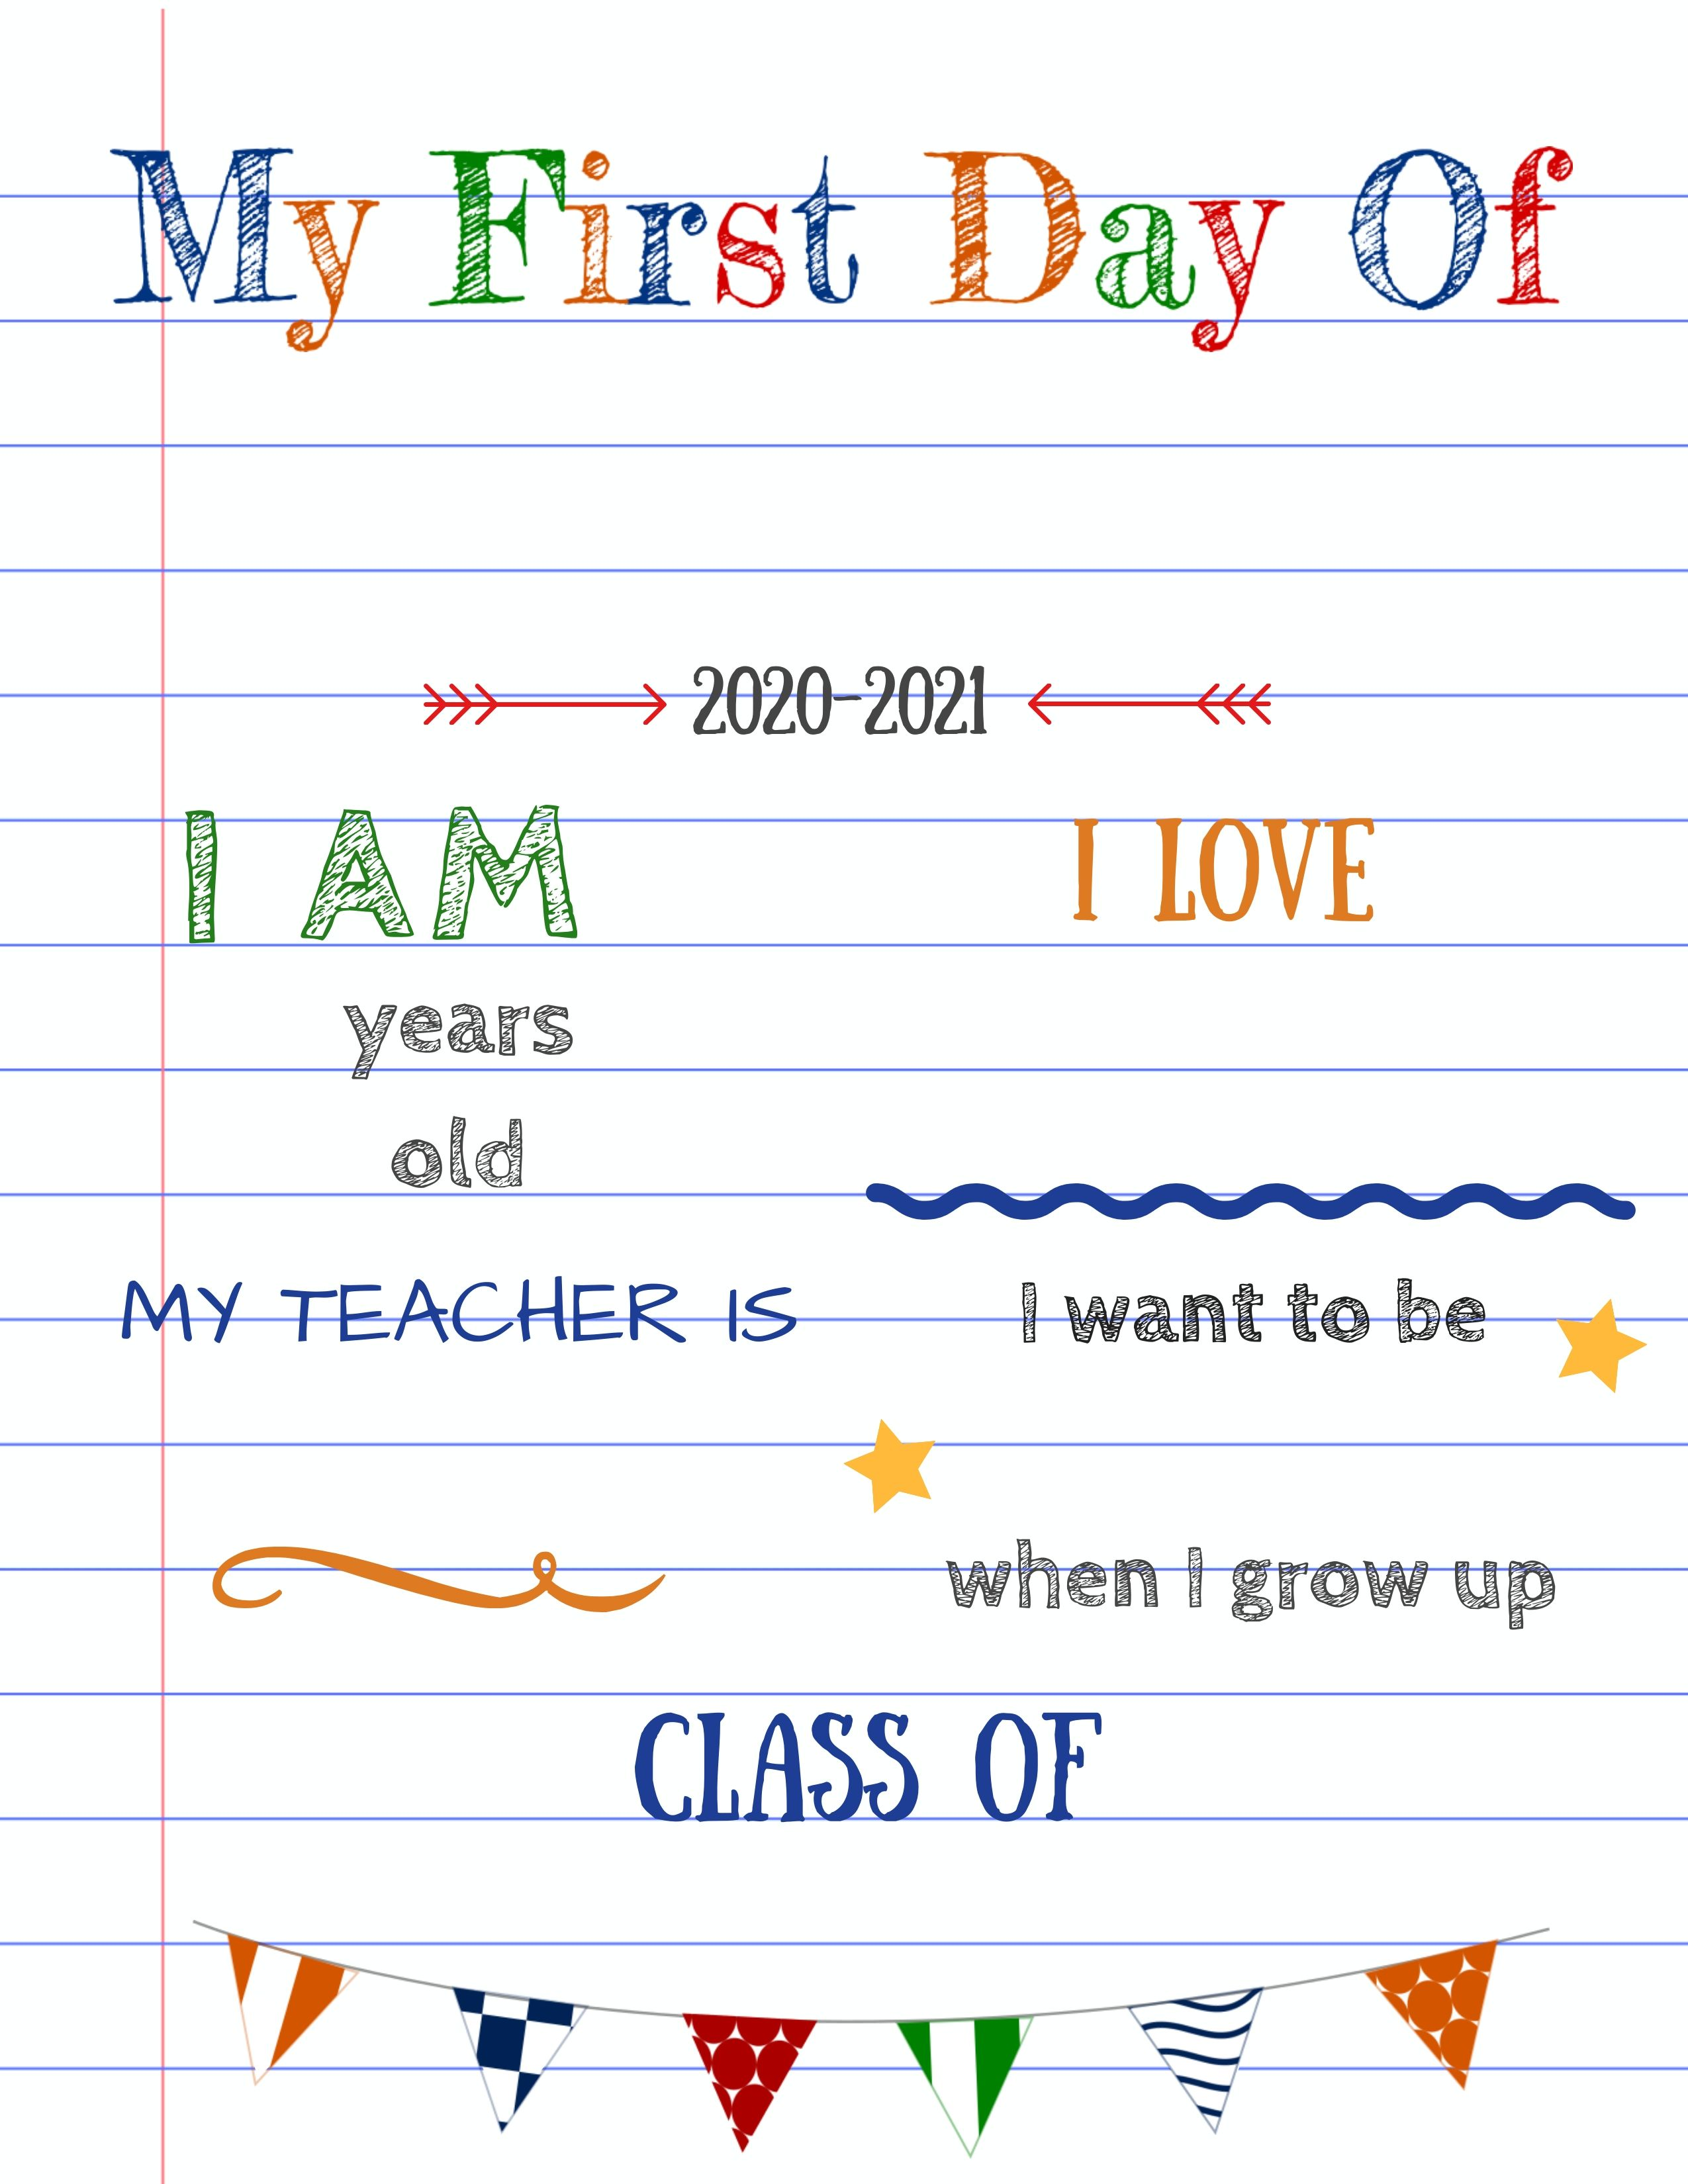 Https Www Planesandballoons Com Wp Content Uploads 2020 06 Editable First Day Of School Signs White School Signs First Day School Sign Kindergarten First Day [ 3300 x 2550 Pixel ]